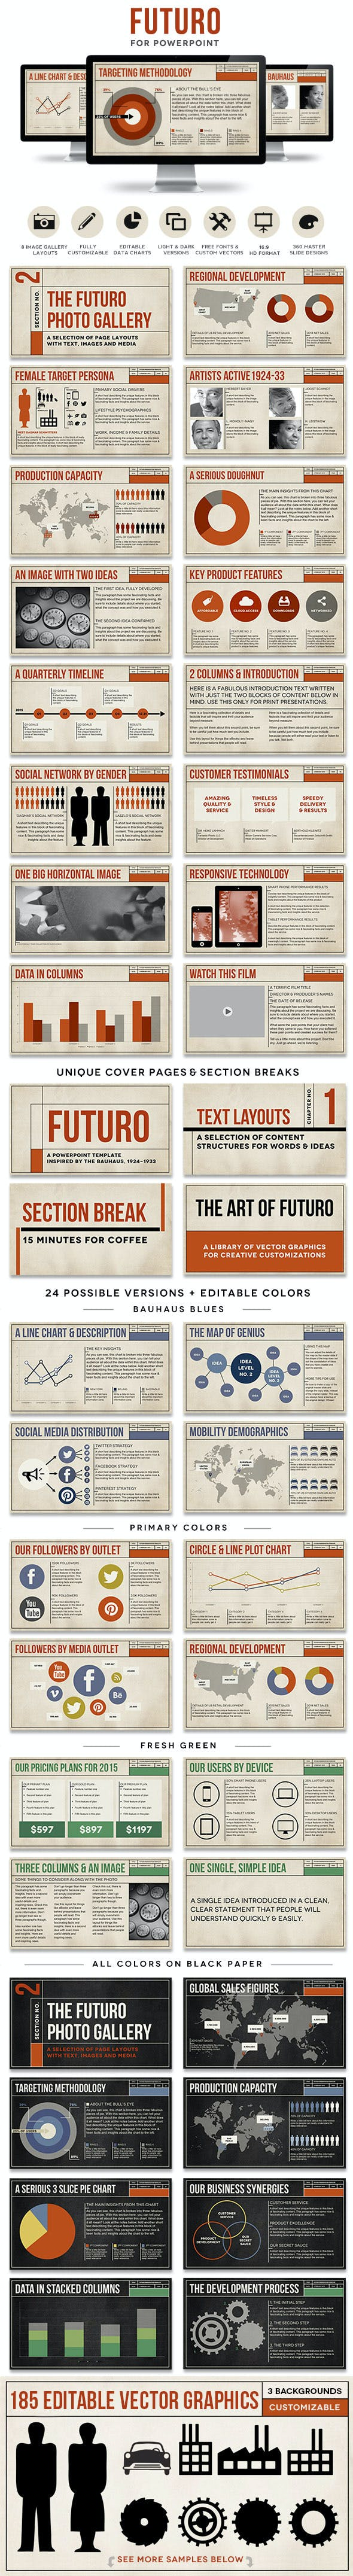 Futuro Powerpoint Presentation Template